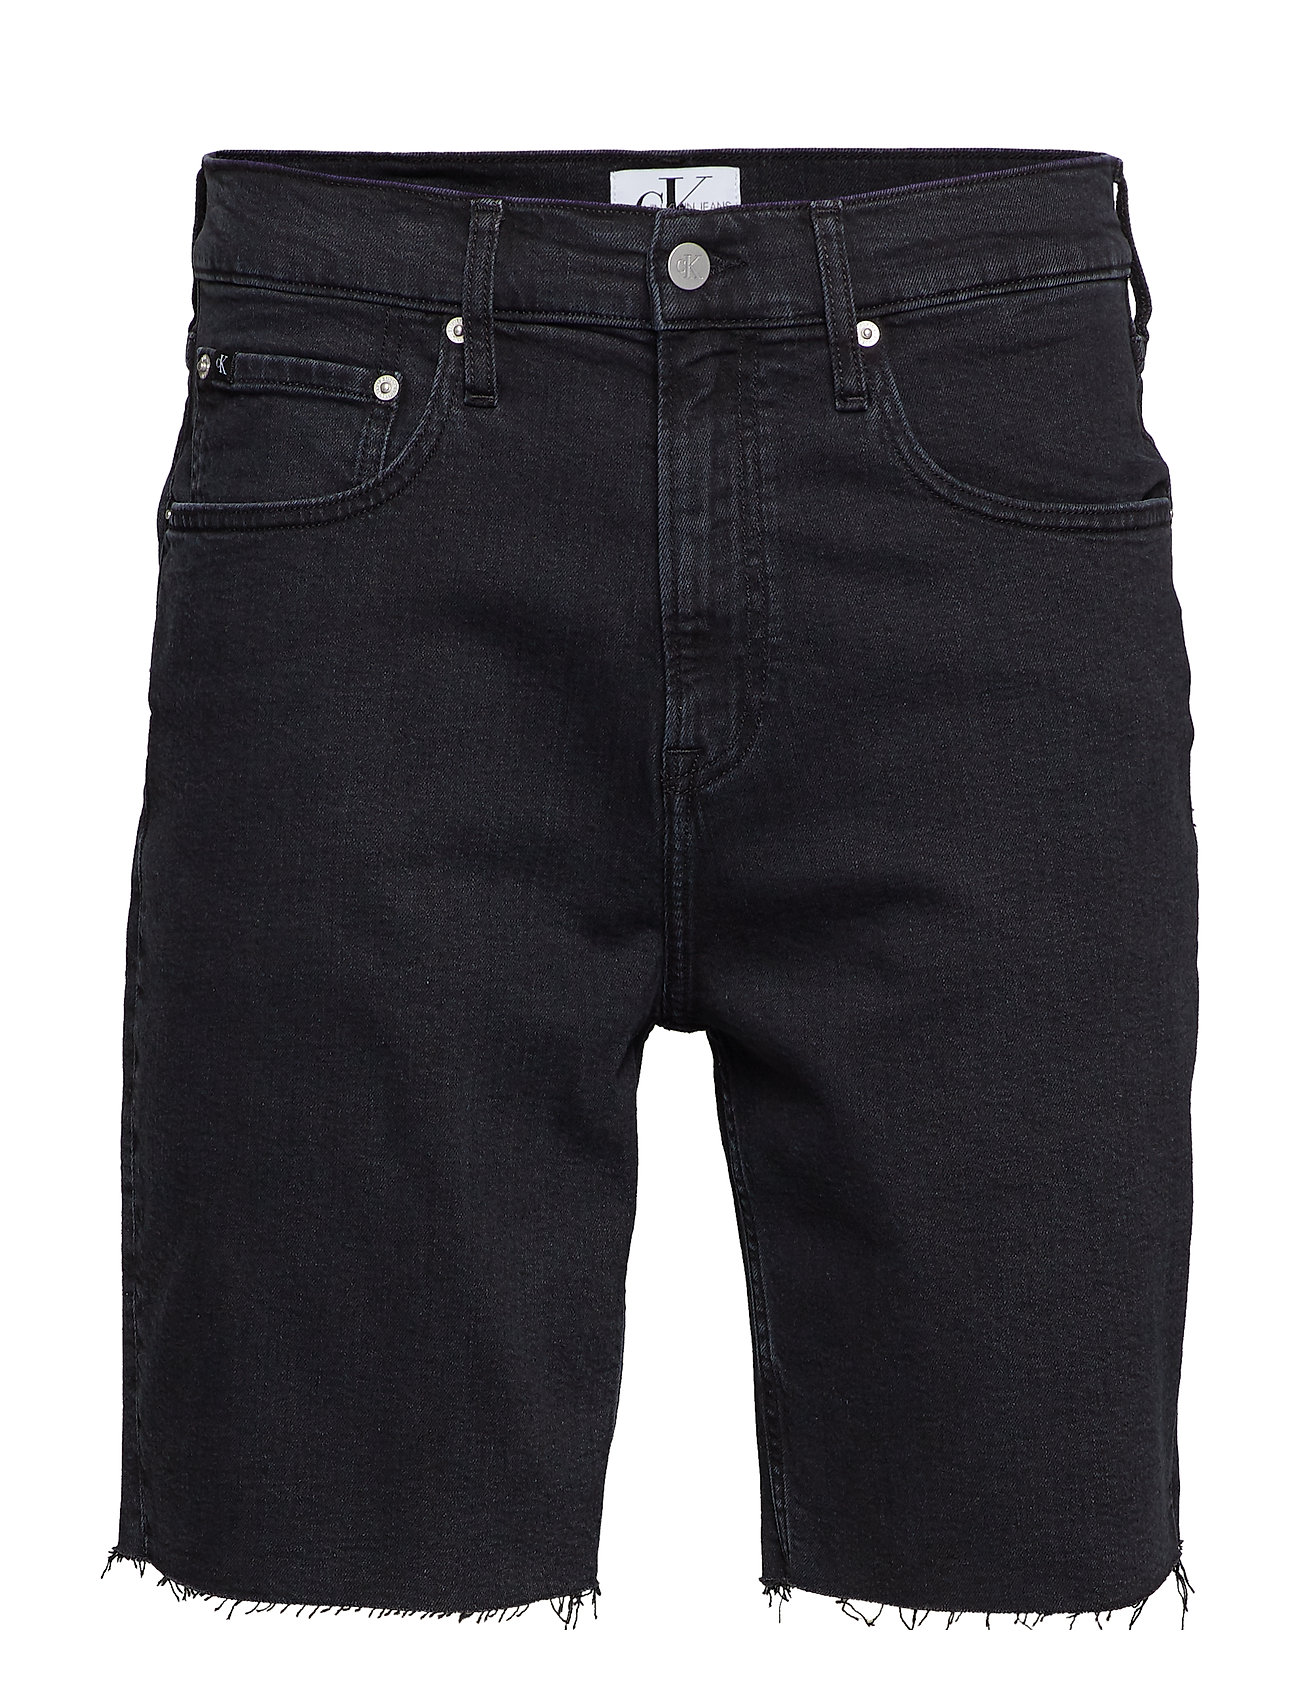 Calvin Klein Jeans STRAIGHT SHORT - ICONIC BLACK STONE CMF